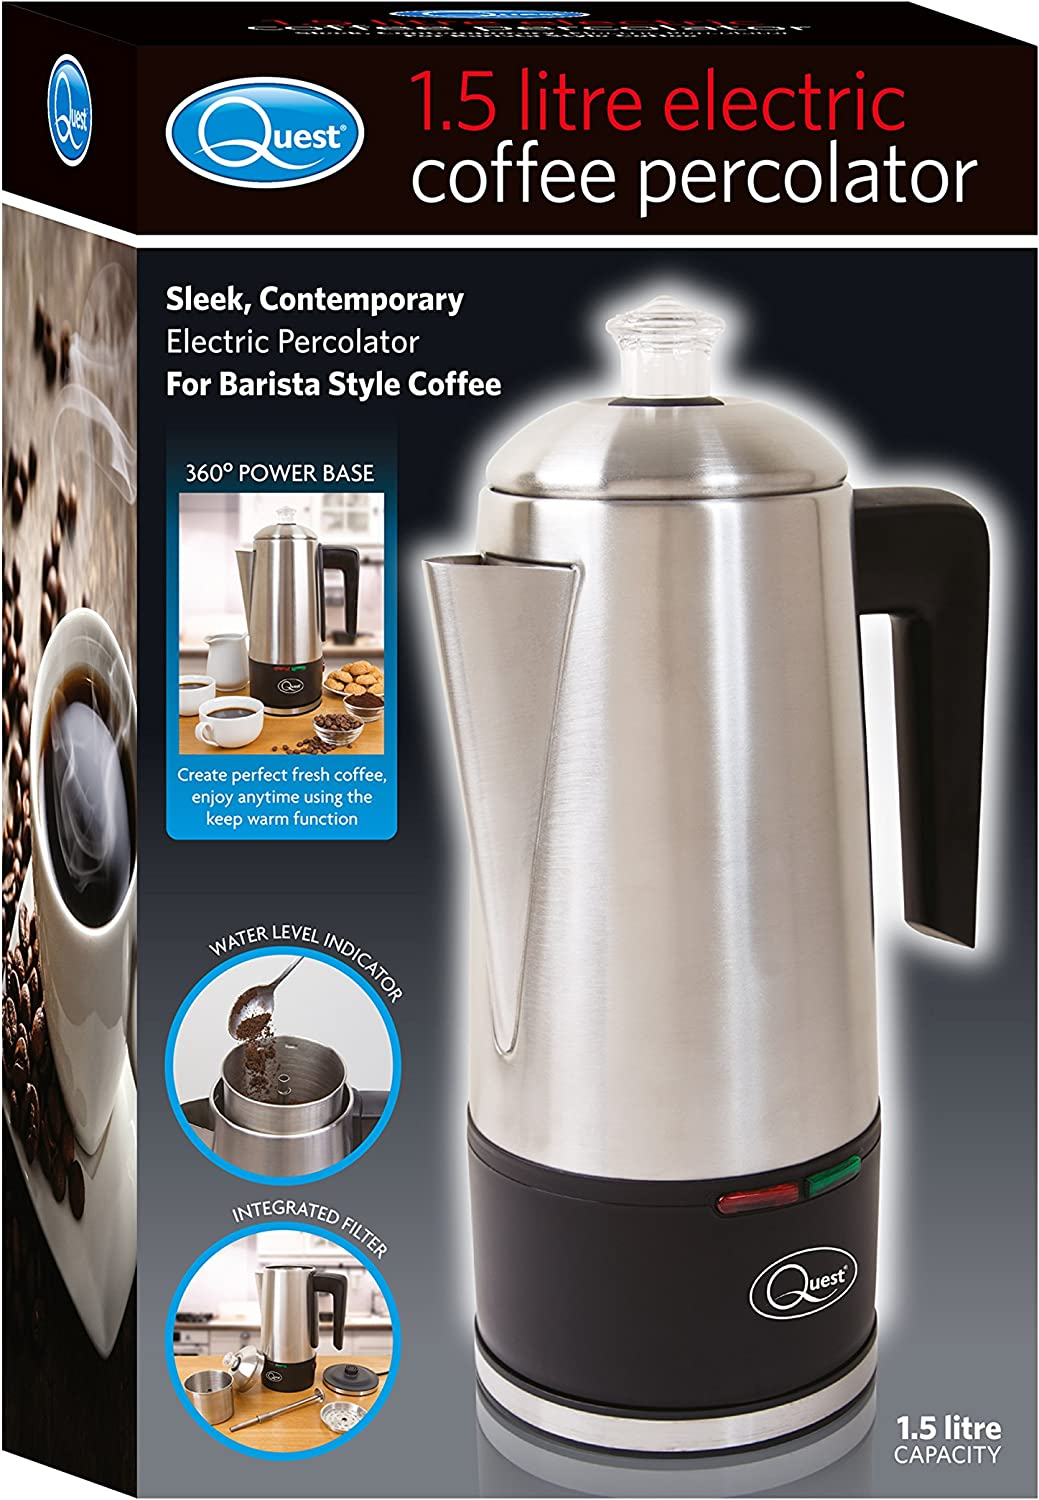 Quest 35200 Stainless Steel Cordless Electric Coffee Percolator With Integrated Filter 15 Litre 1100 W Silver 21 X 33 X 14cm 1000 W 18 Liters